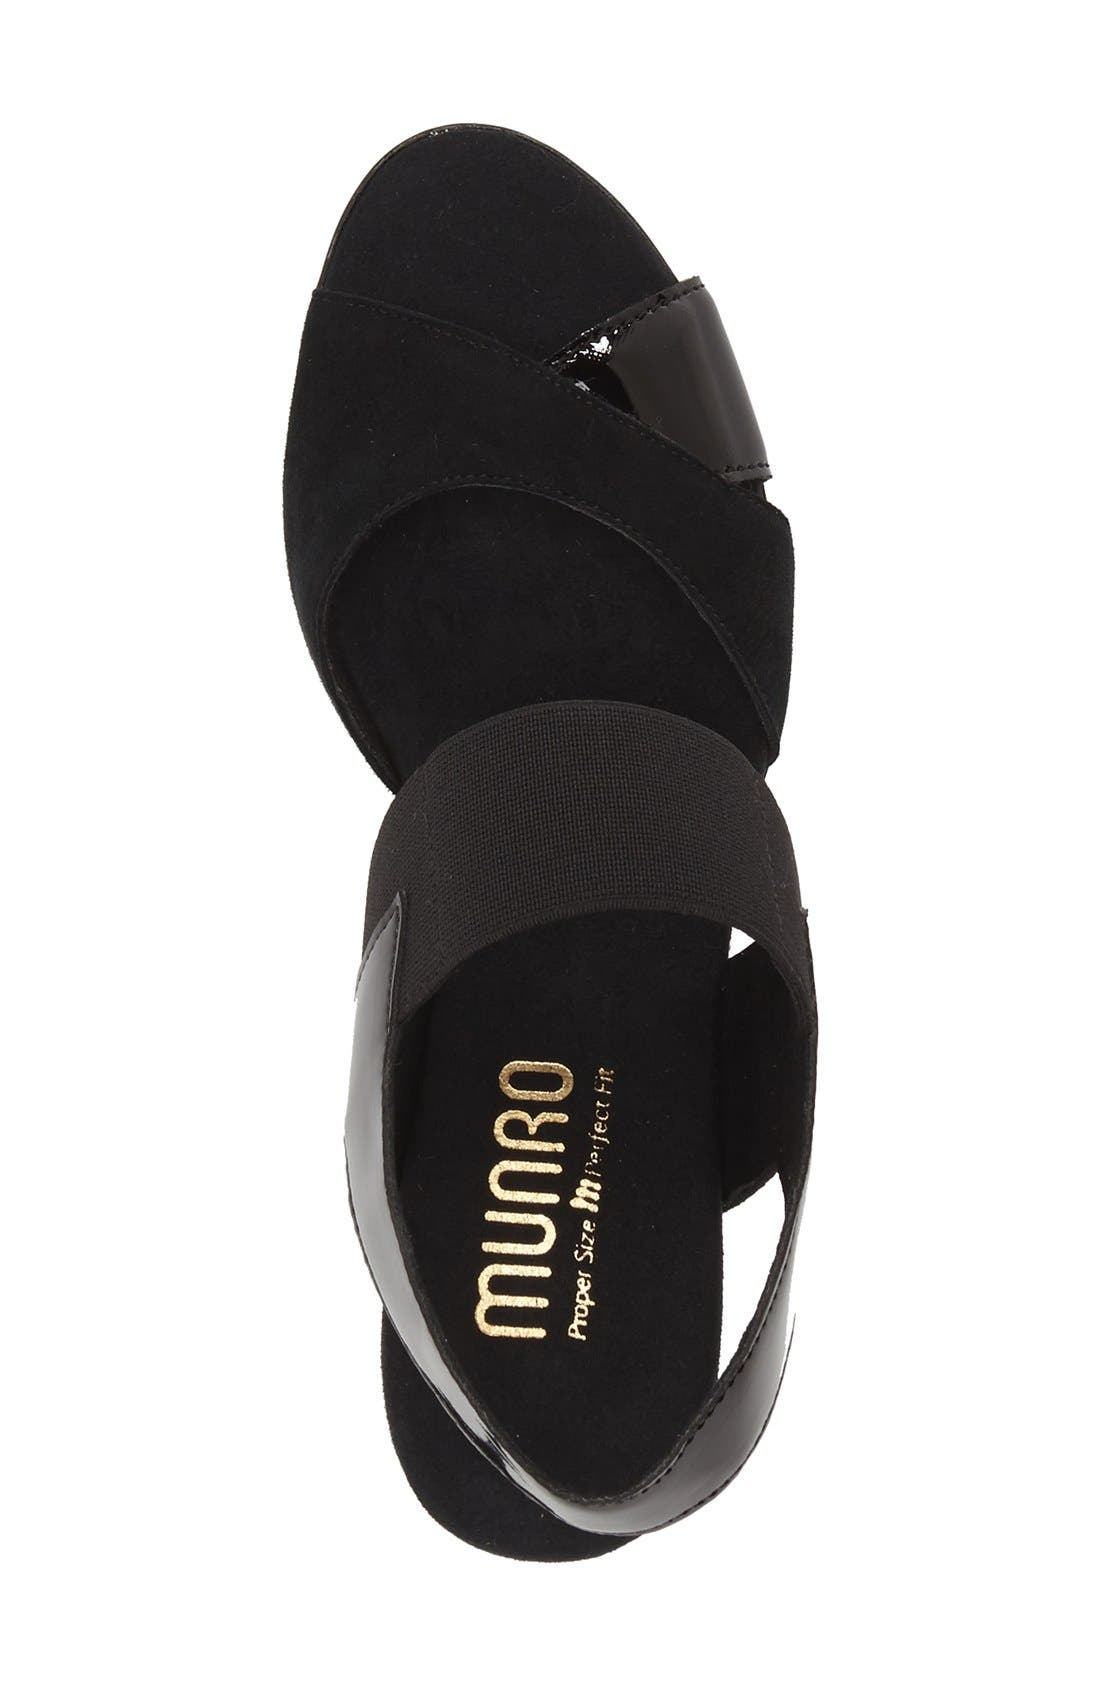 MUNRO,                             Darling Mixed Finish Slingback Sandal,                             Alternate thumbnail 2, color,                             BLACK COMBO